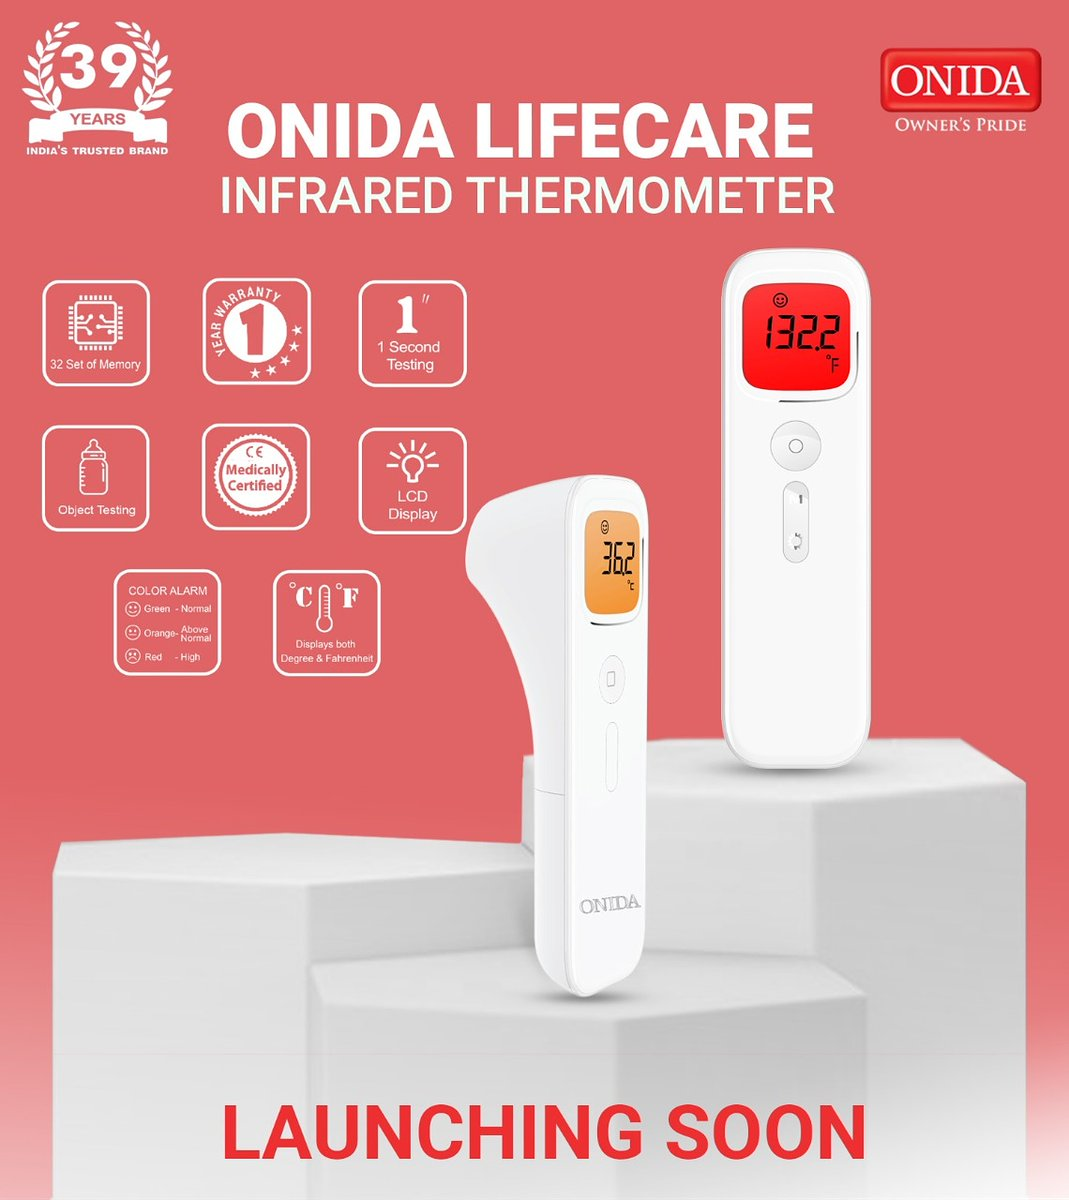 Your health is important to us. With 39 years of Innovation, Onida Introduces Lifecare Contactless Infrared thermometer. Keep your health in check with our Health Tech. . #Onida #IndiaKaOnida #LifeCare #Healthcare #IRThermometer #HealthDevices #covidcheck #DigitalThermometer https://t.co/rKIDoZALeT